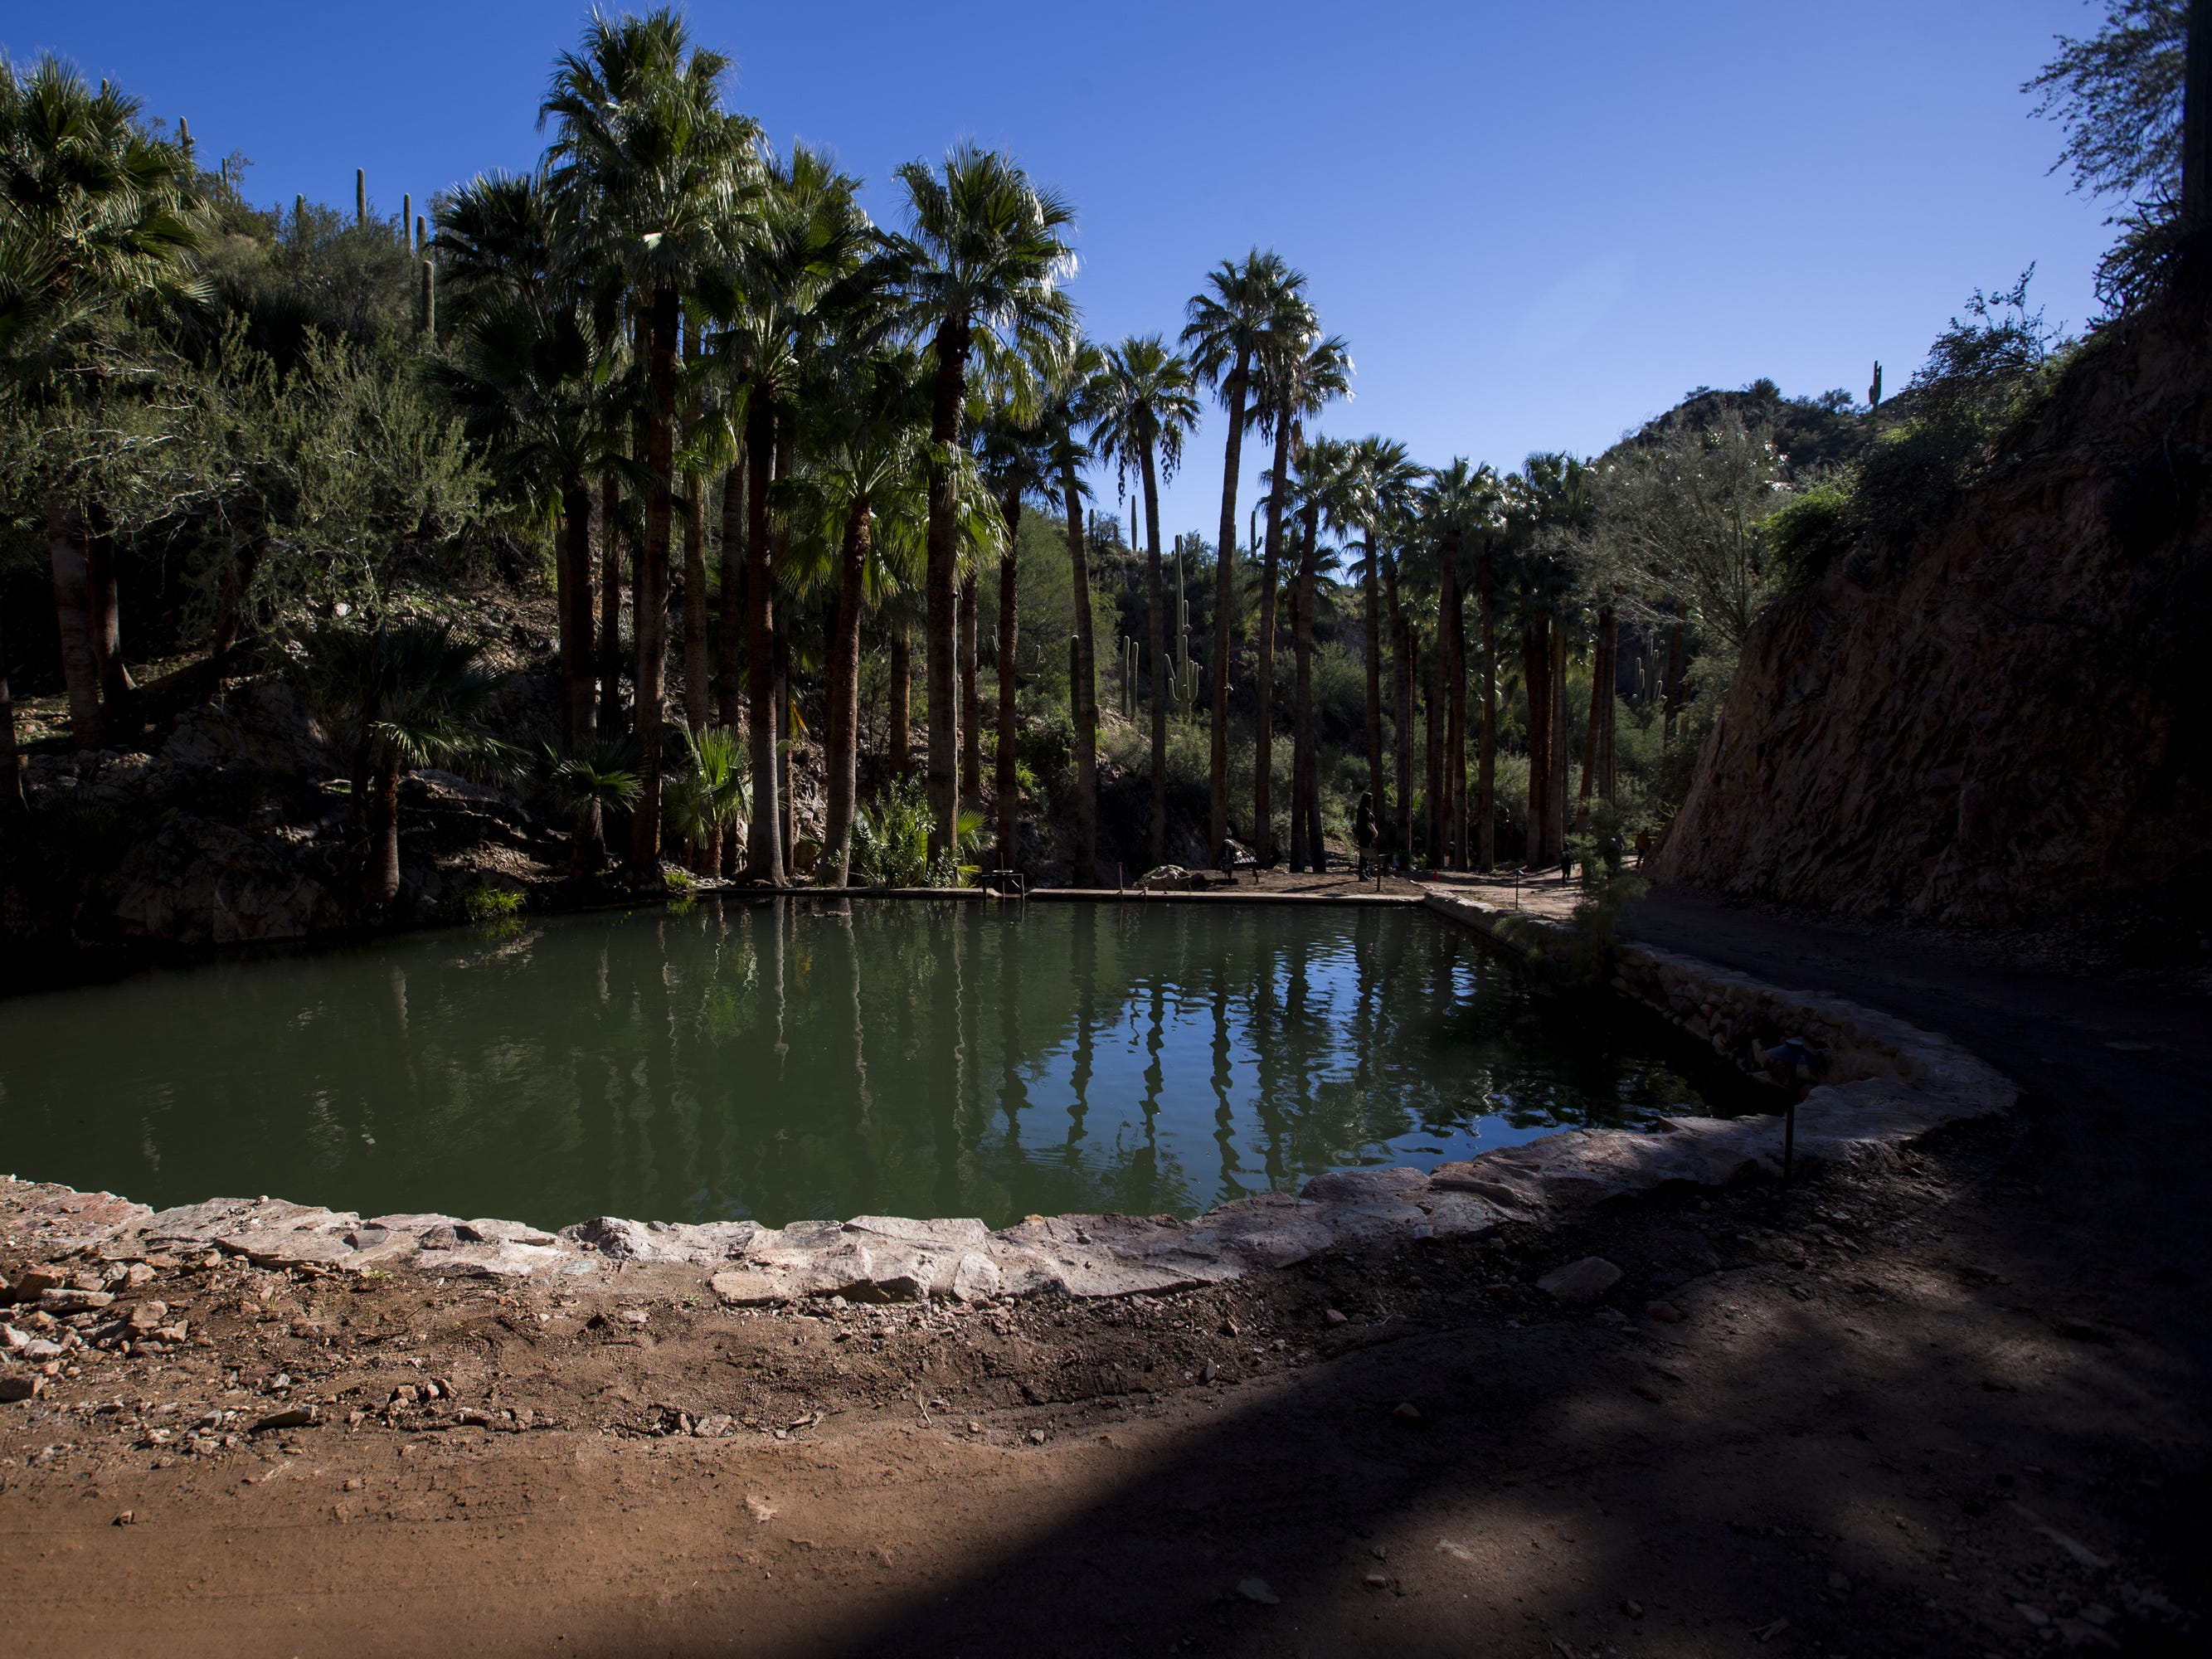 A pond at the newly renovated Castle Hot Springs resort is pictured on Saturday, Dec. 8, 2018, in Morristown, Ariz. It has been 50 years since the resort has hosted any guests.